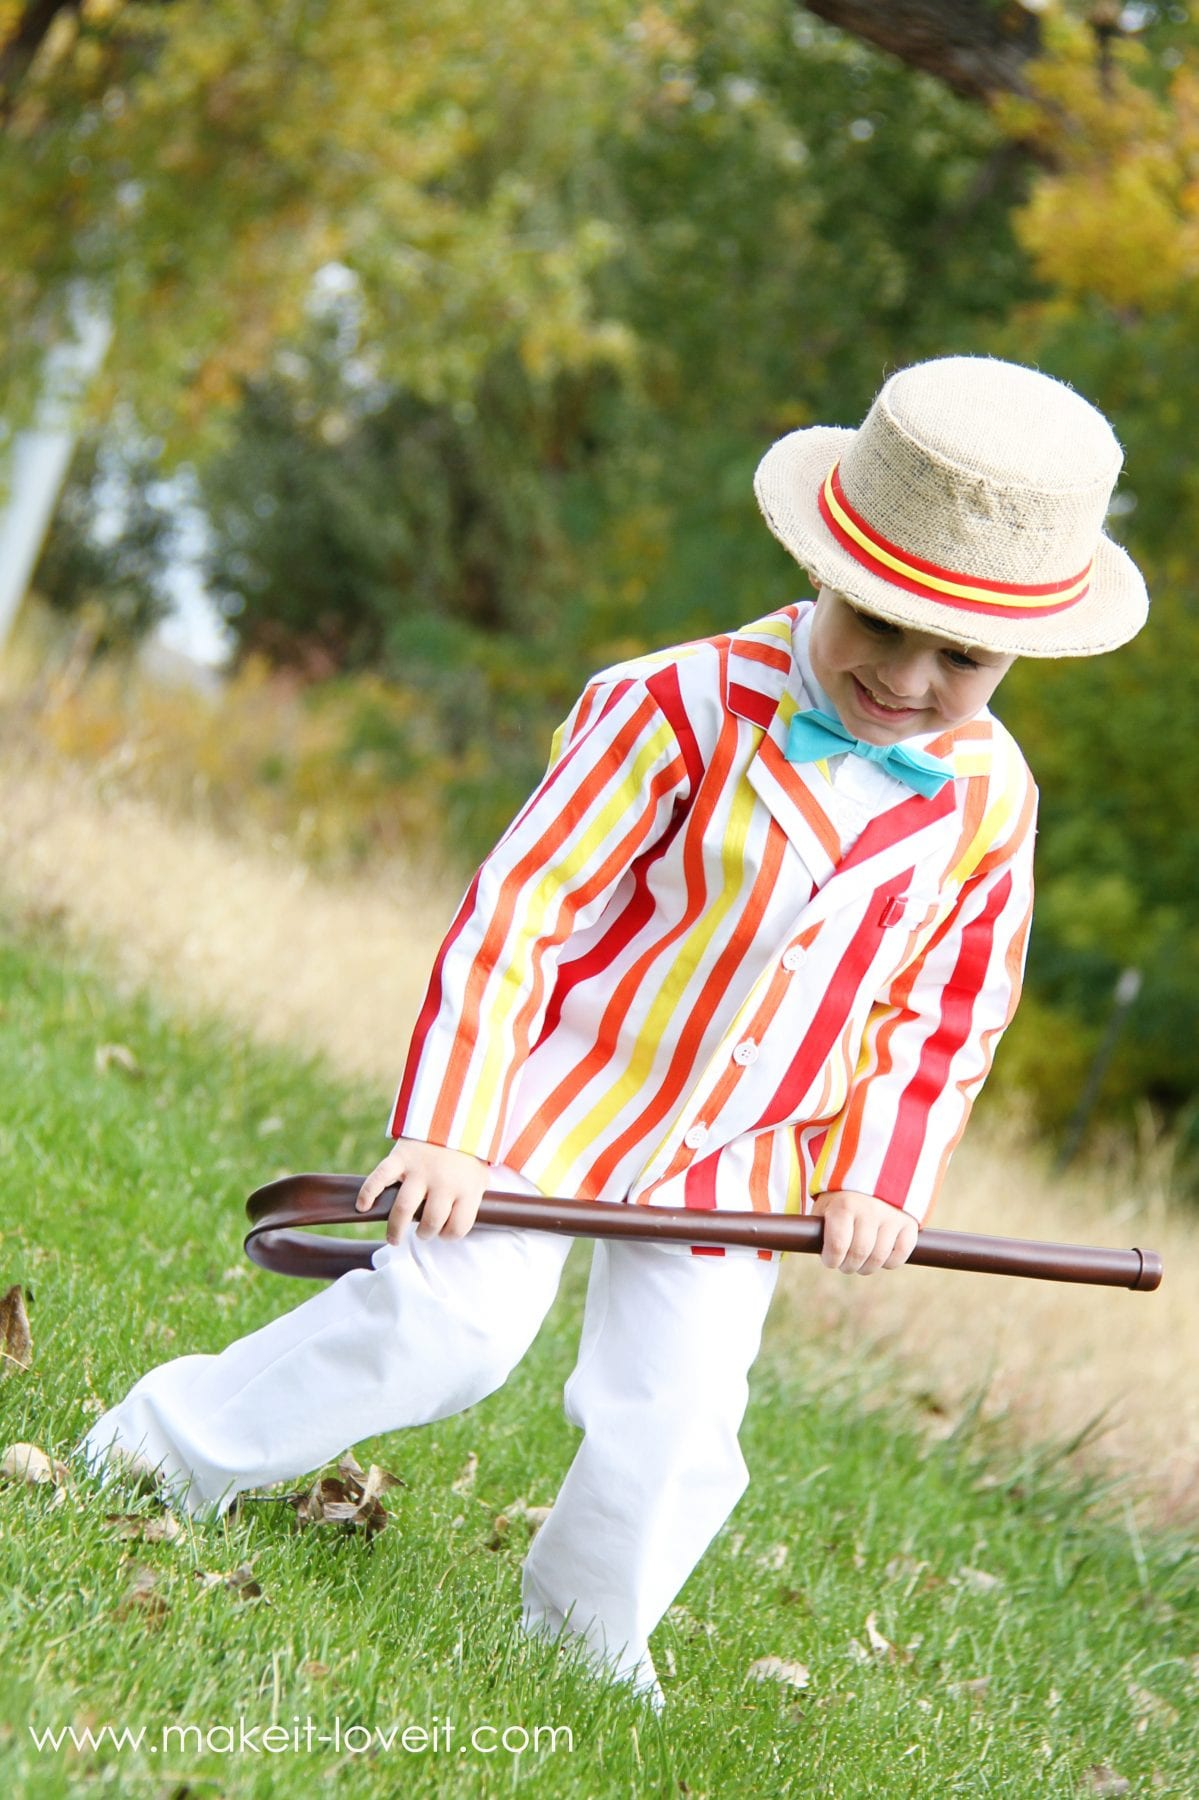 Halloween Costumes 2011: Bert (from Mary Poppins)